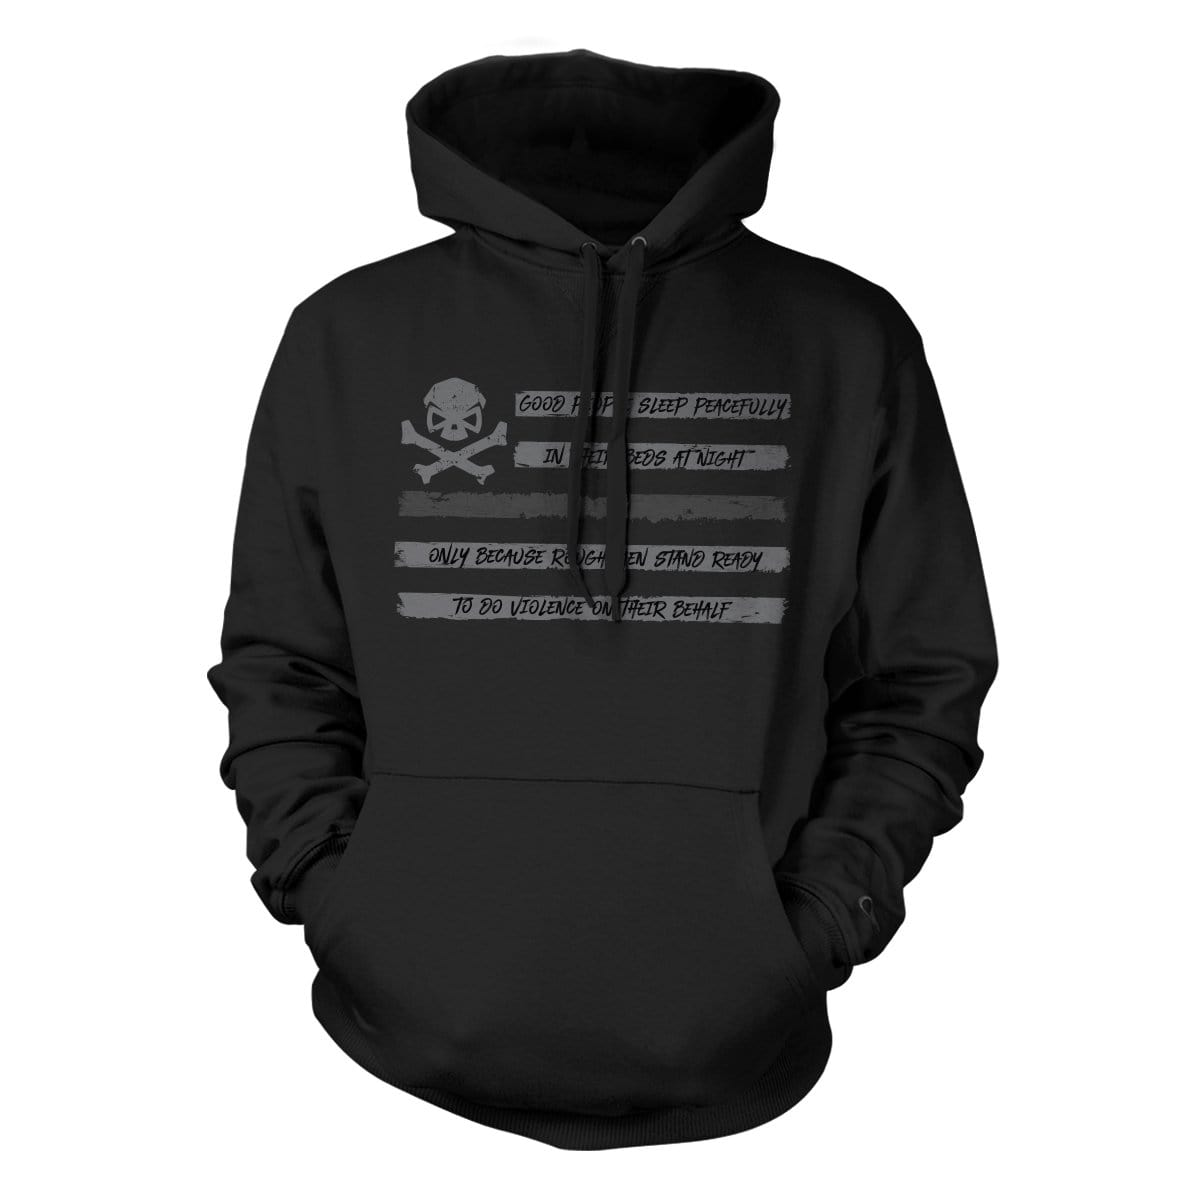 People Sleep - Flag Hoodie - Black/Gray - Hoodies - Pipe Hitters Union